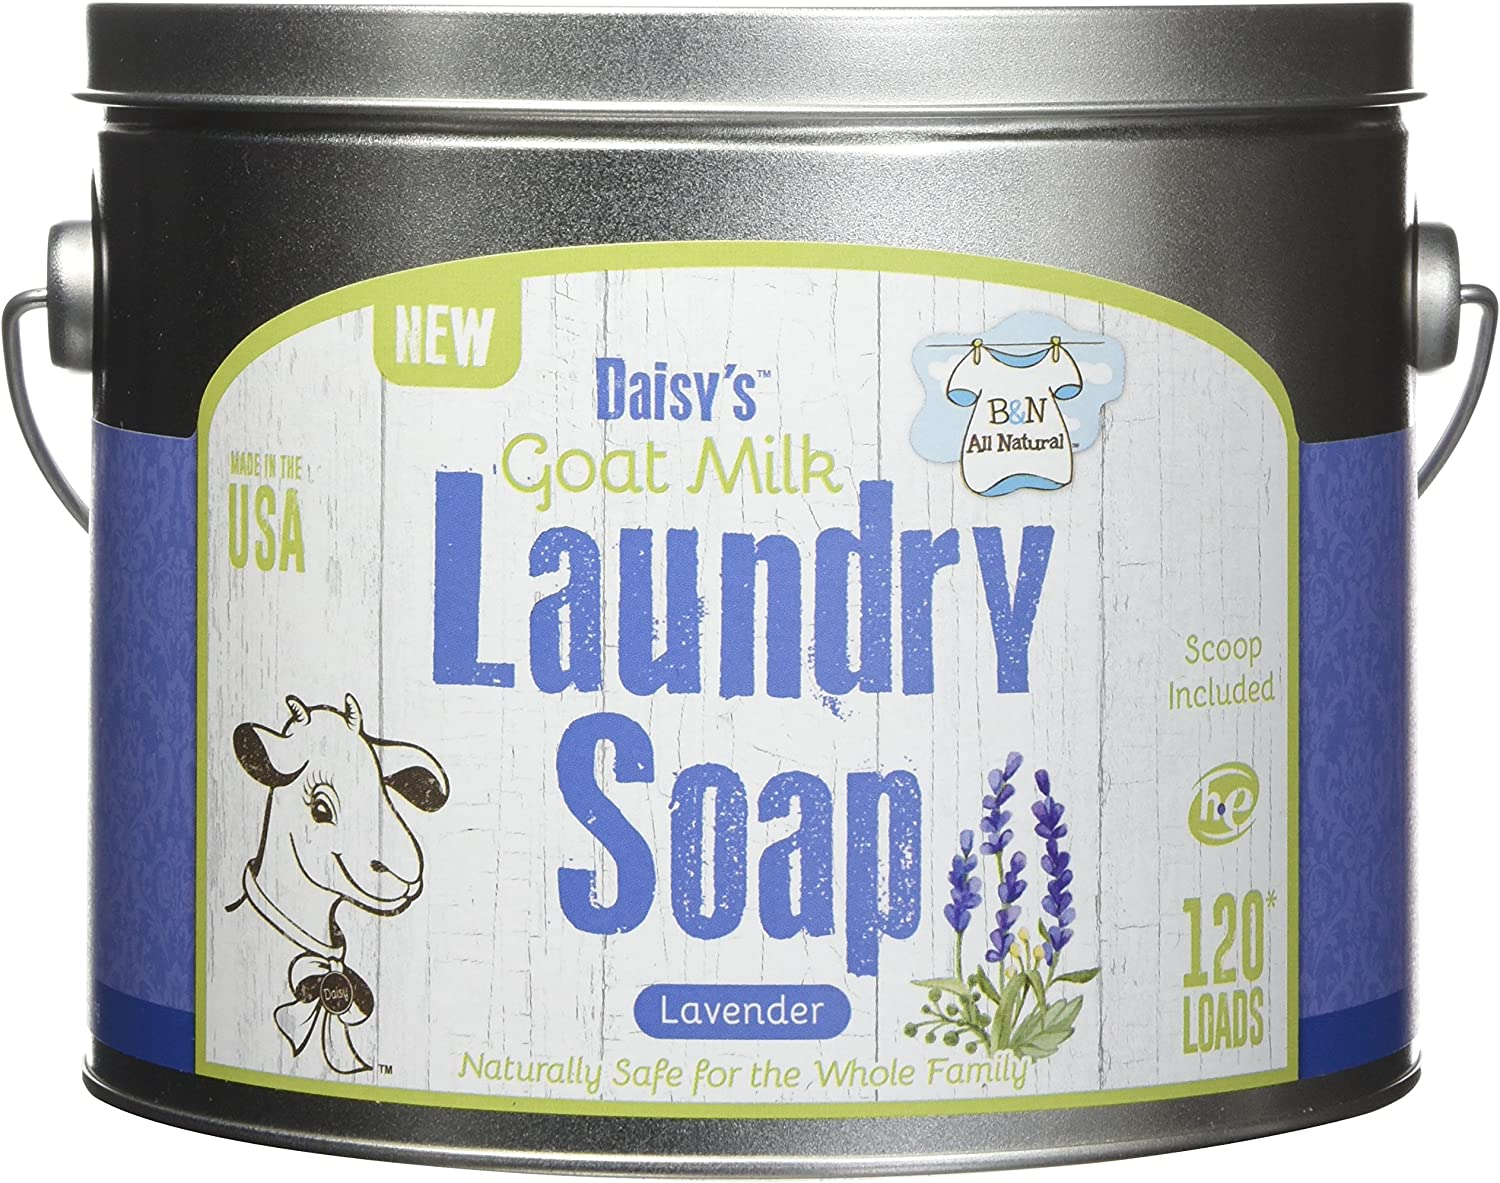 Brooke Nora at Home Goat Milk Loa Max 45% OFF Laundry 120 Soap Time sale Lavender